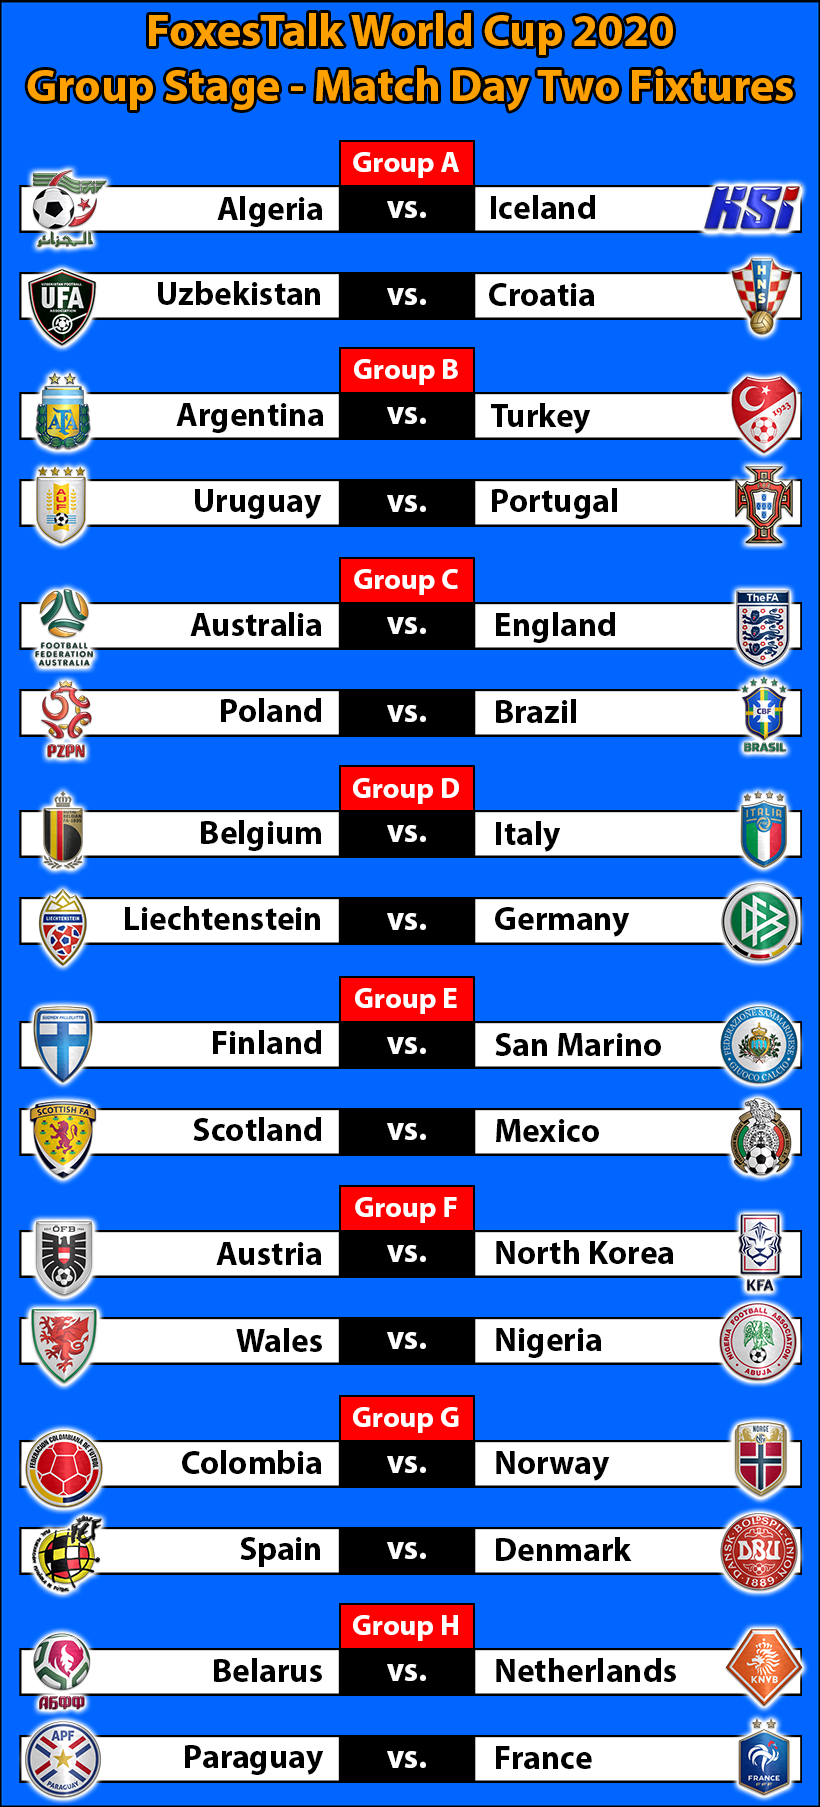 FTWC-Group-Stage-Match-Day-Two-Fixtures.